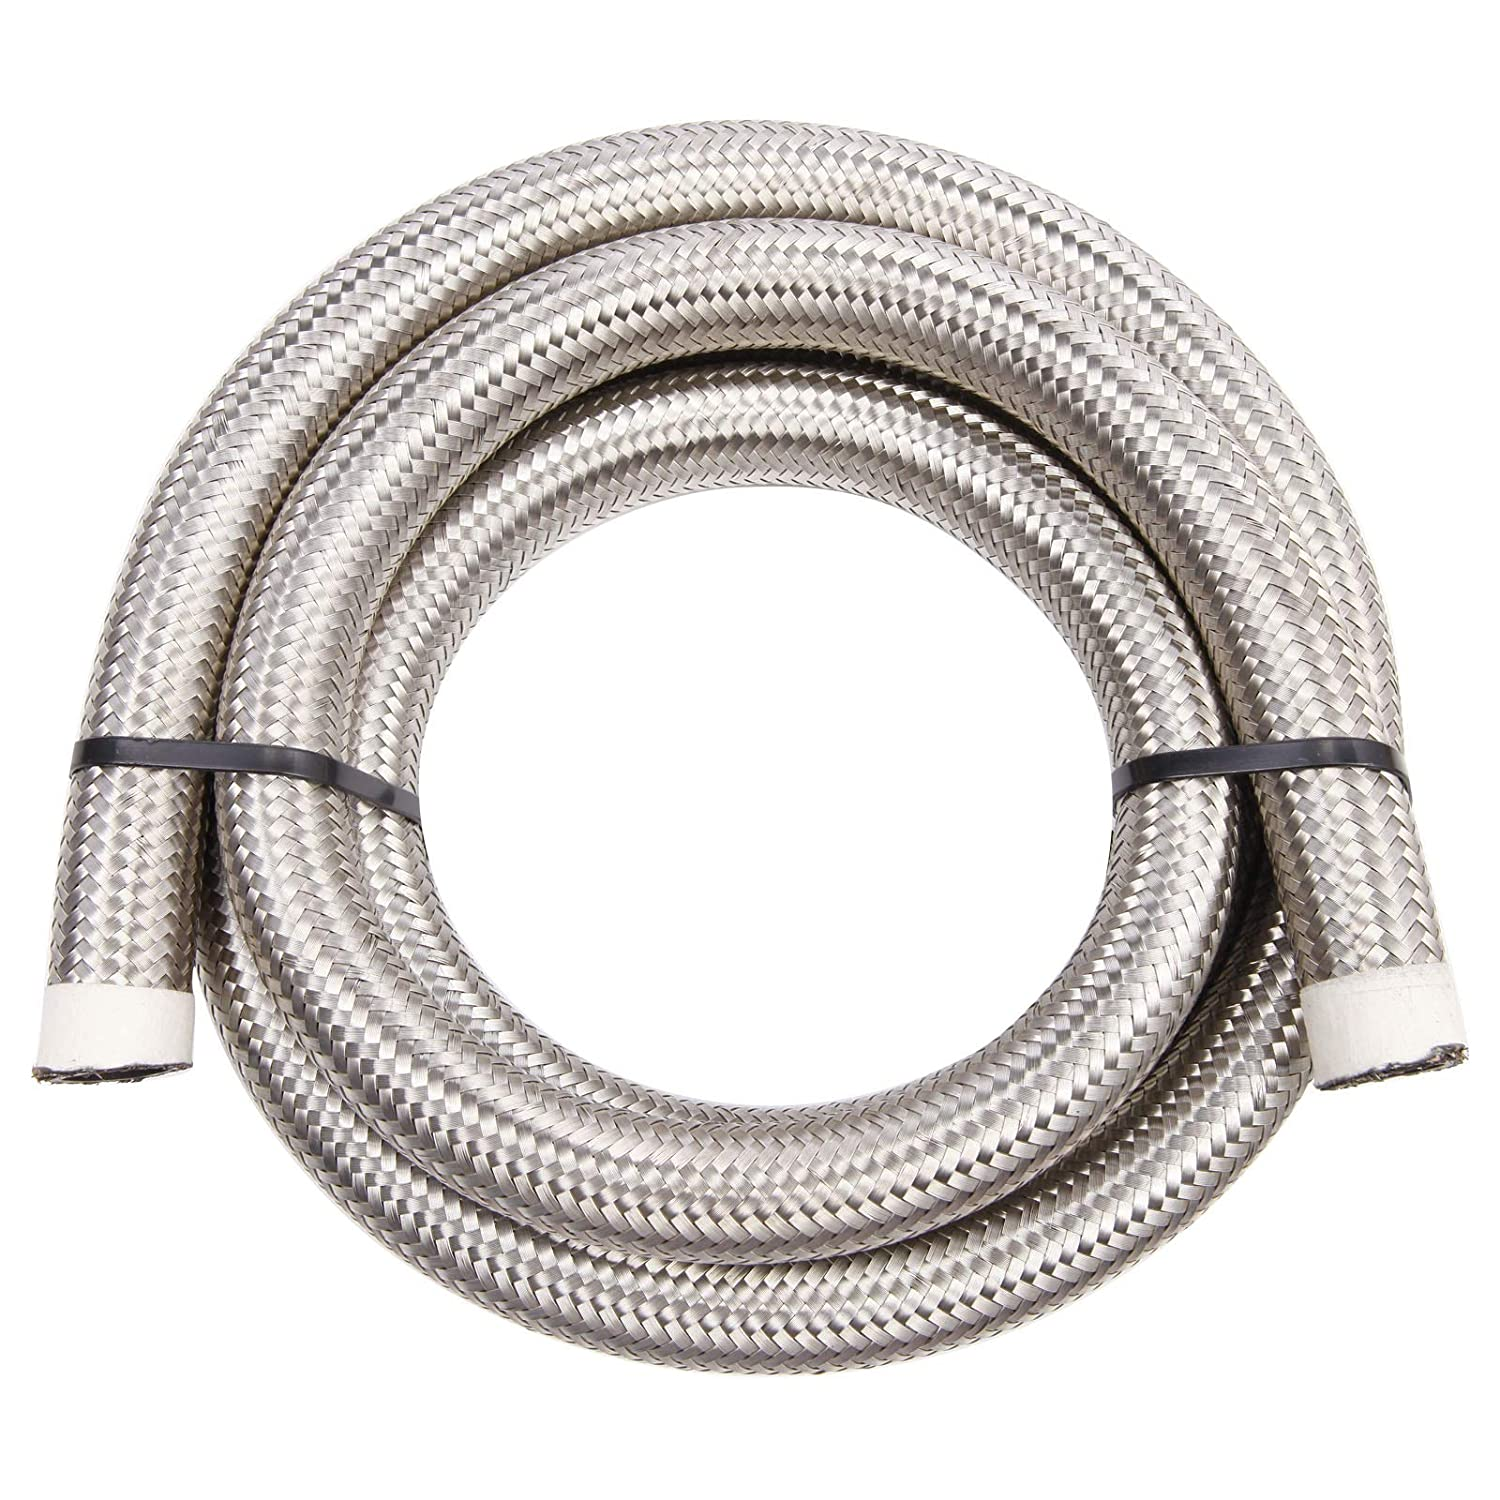 Stainless Steel Braided Fuel Oil Line Hose 2 Meter High Temperature Resistant Cooler Oil Pipe